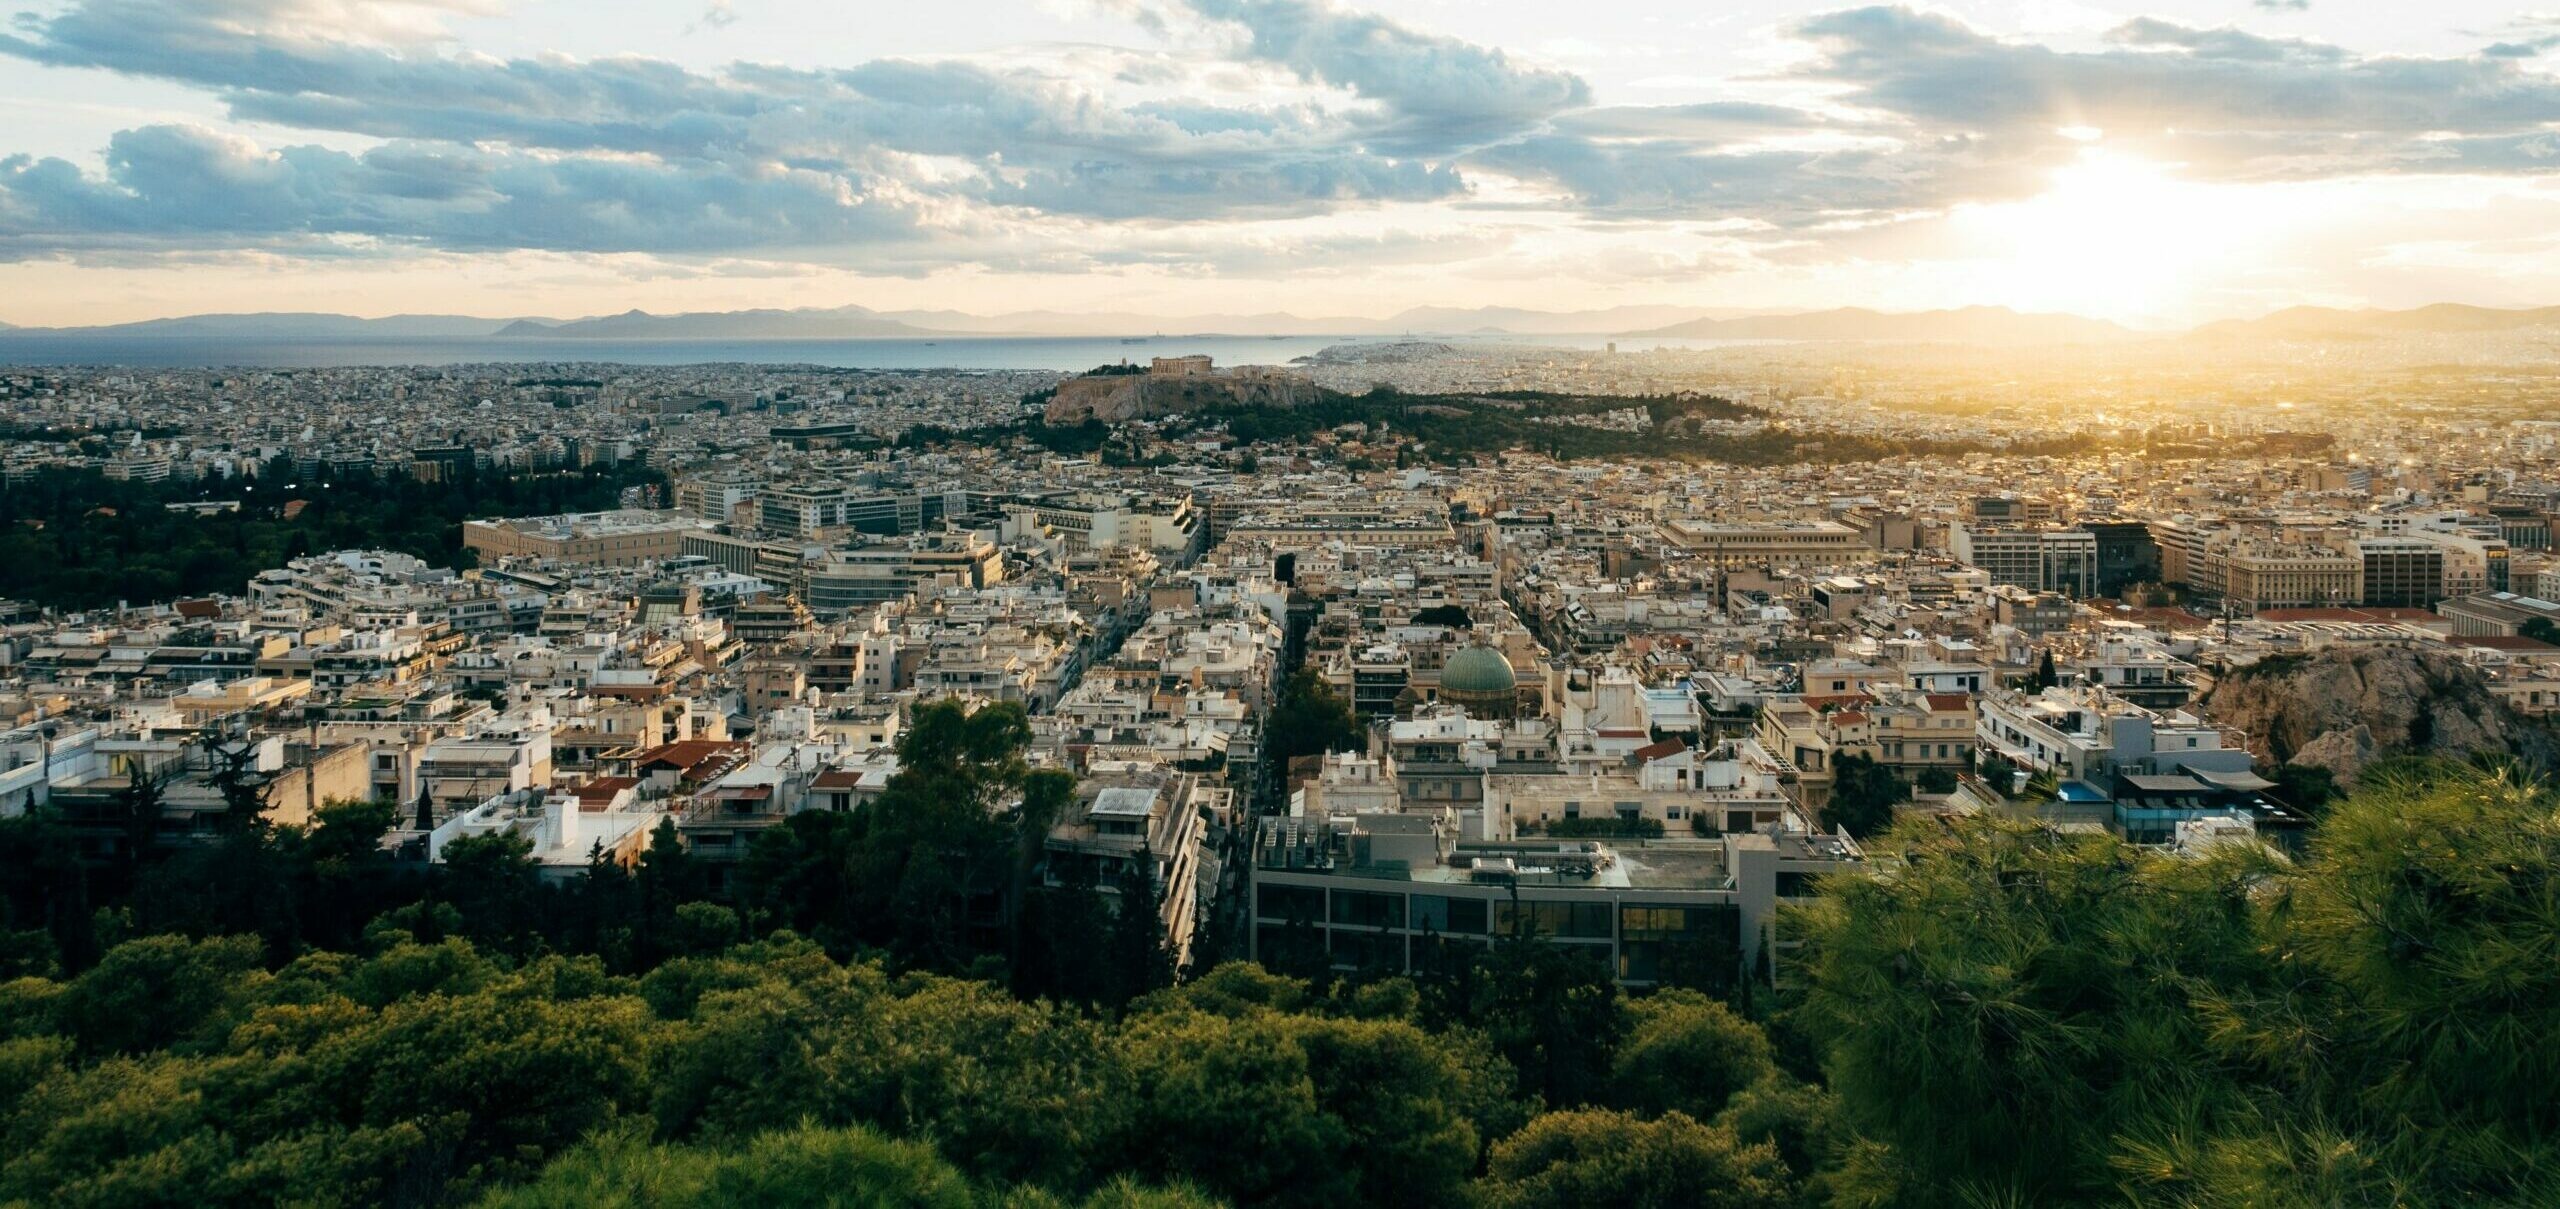 Areas of Athens that changed their names over the years